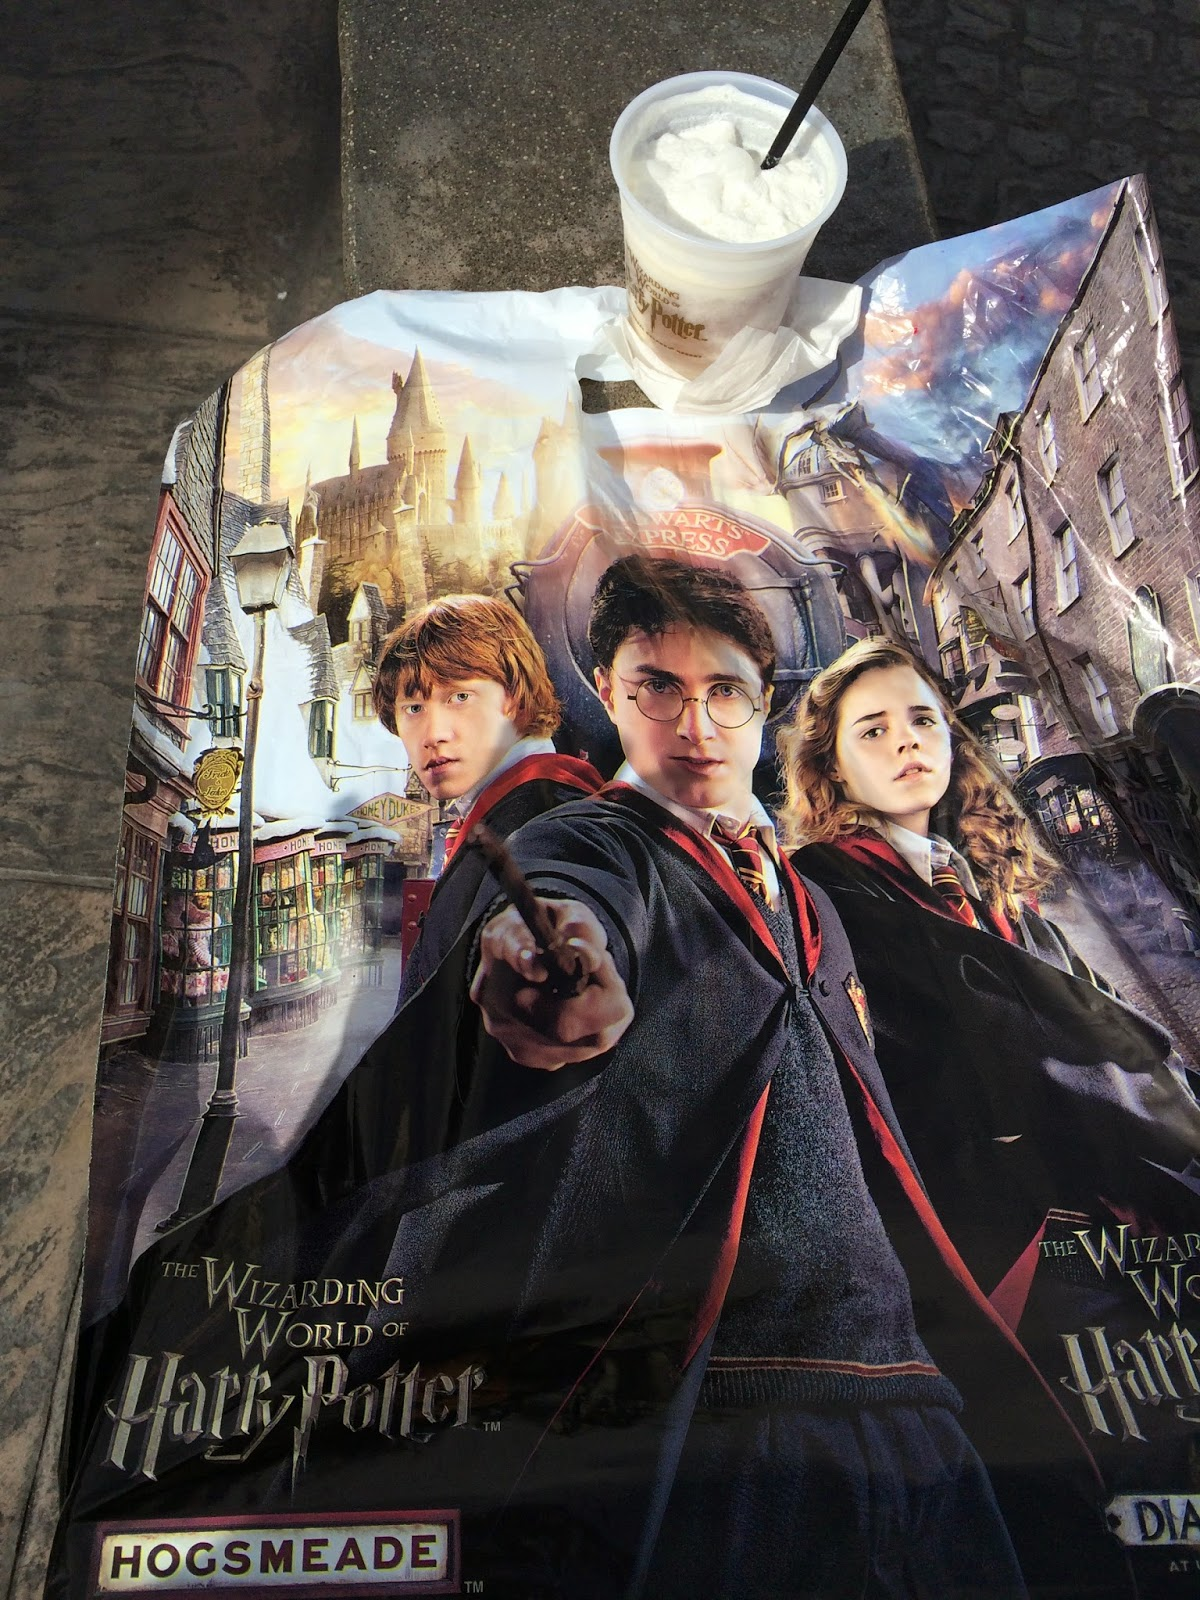 New WWoHP Diagon Alley shopping bag